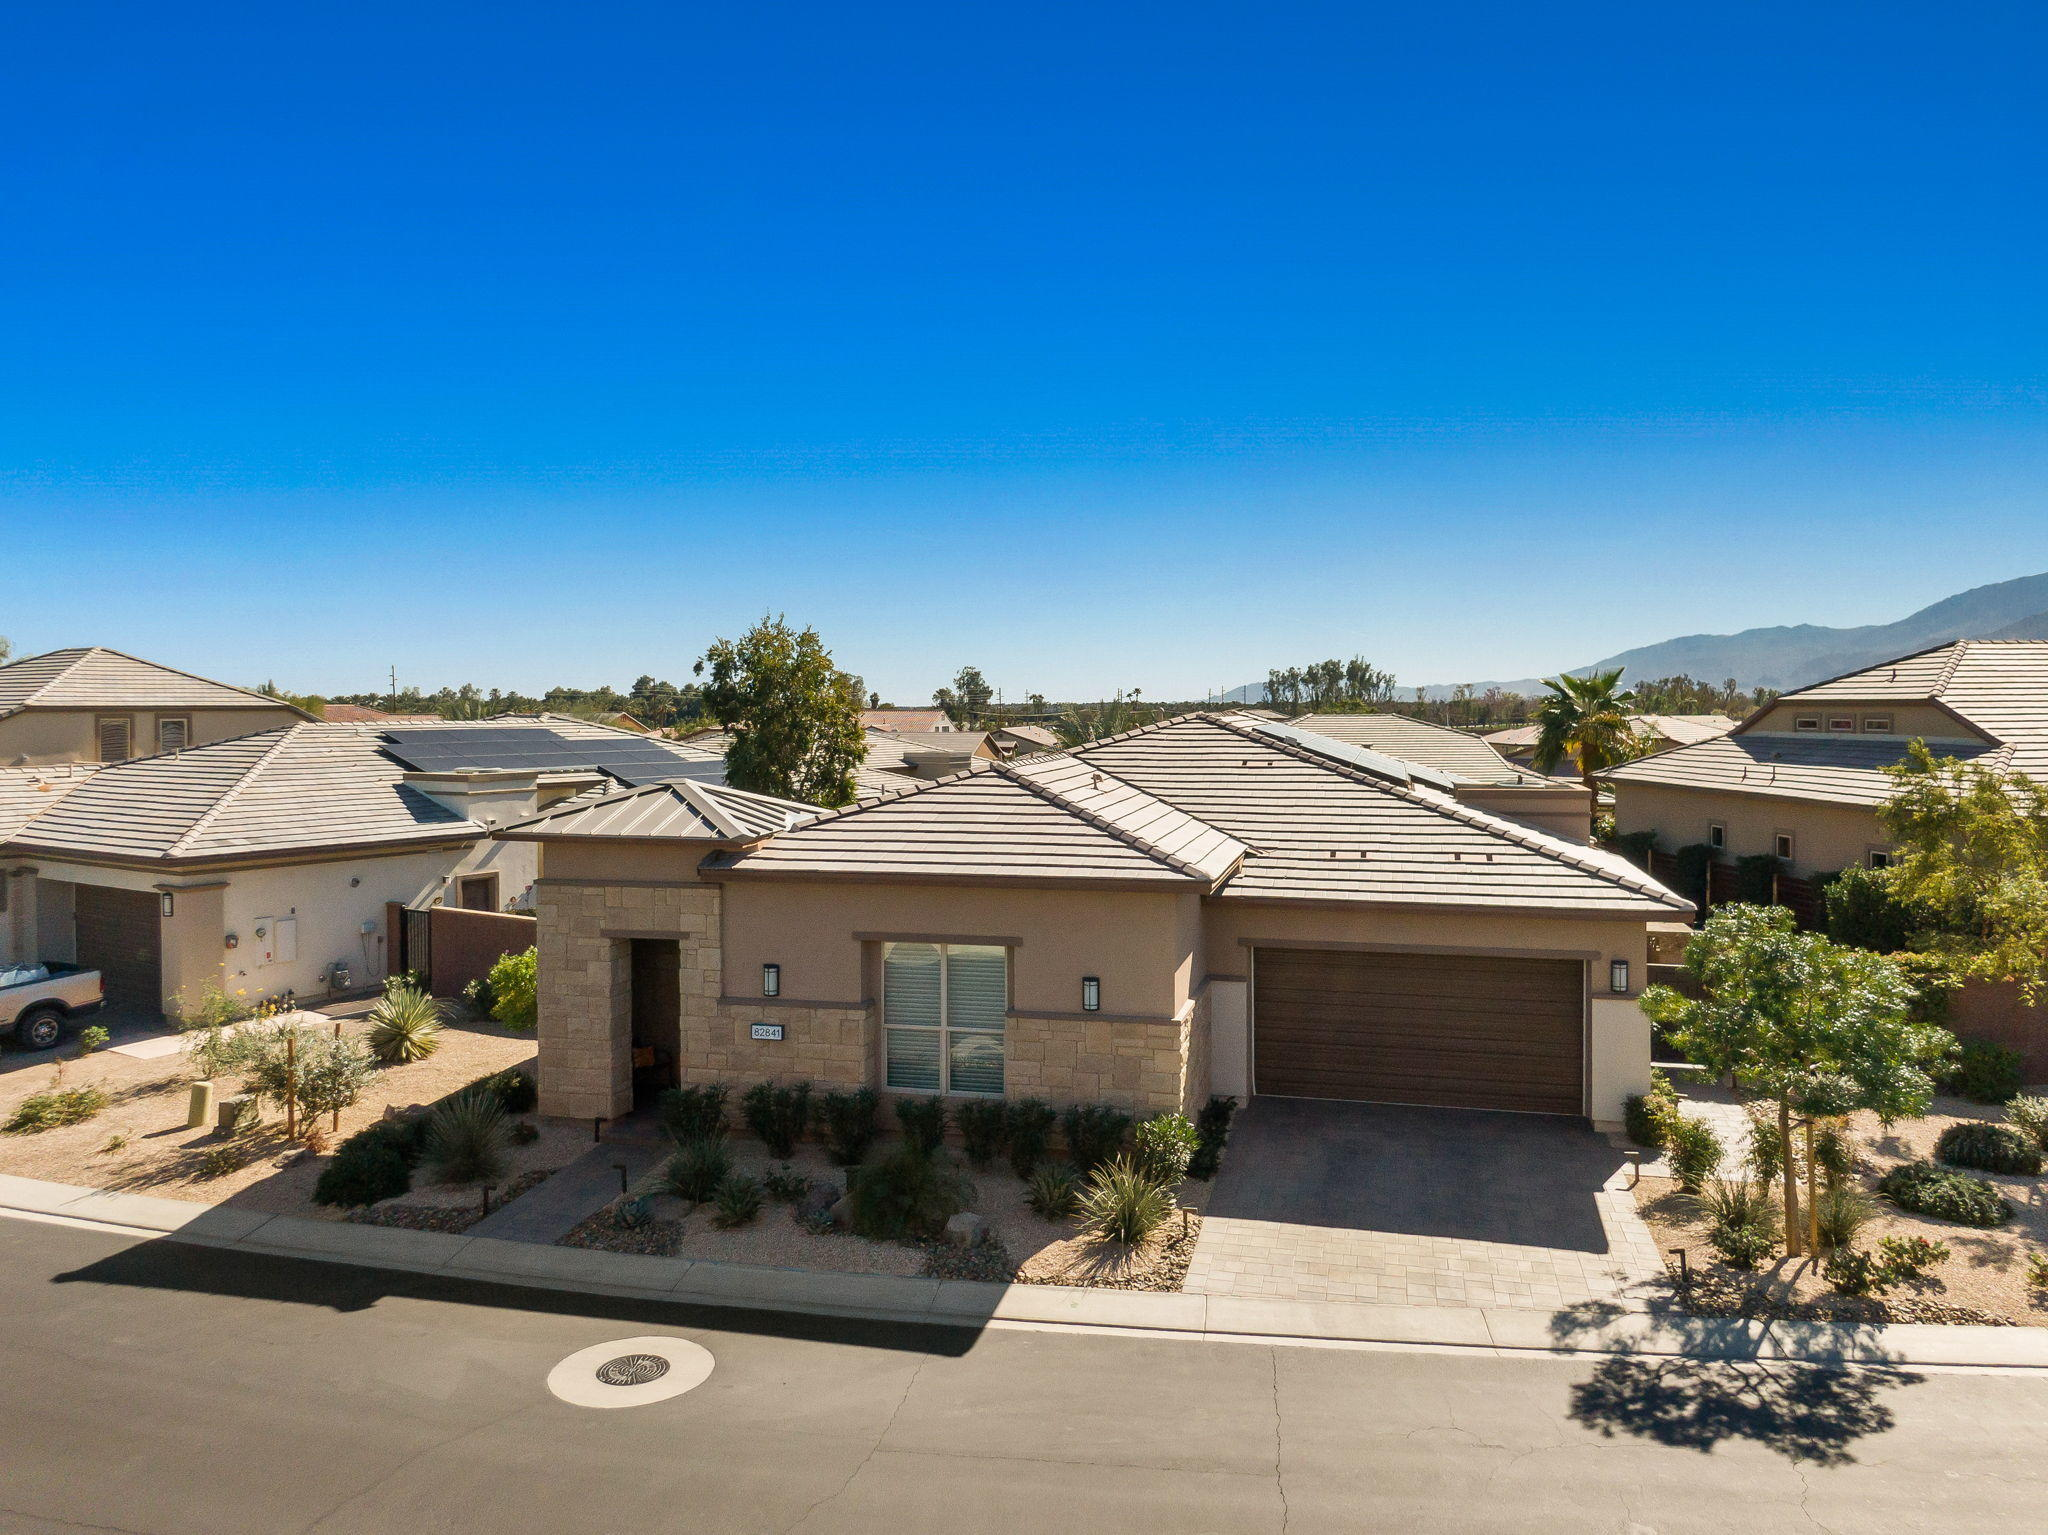 Photo of 82841 Pembroke Lane, Indio, CA 92201